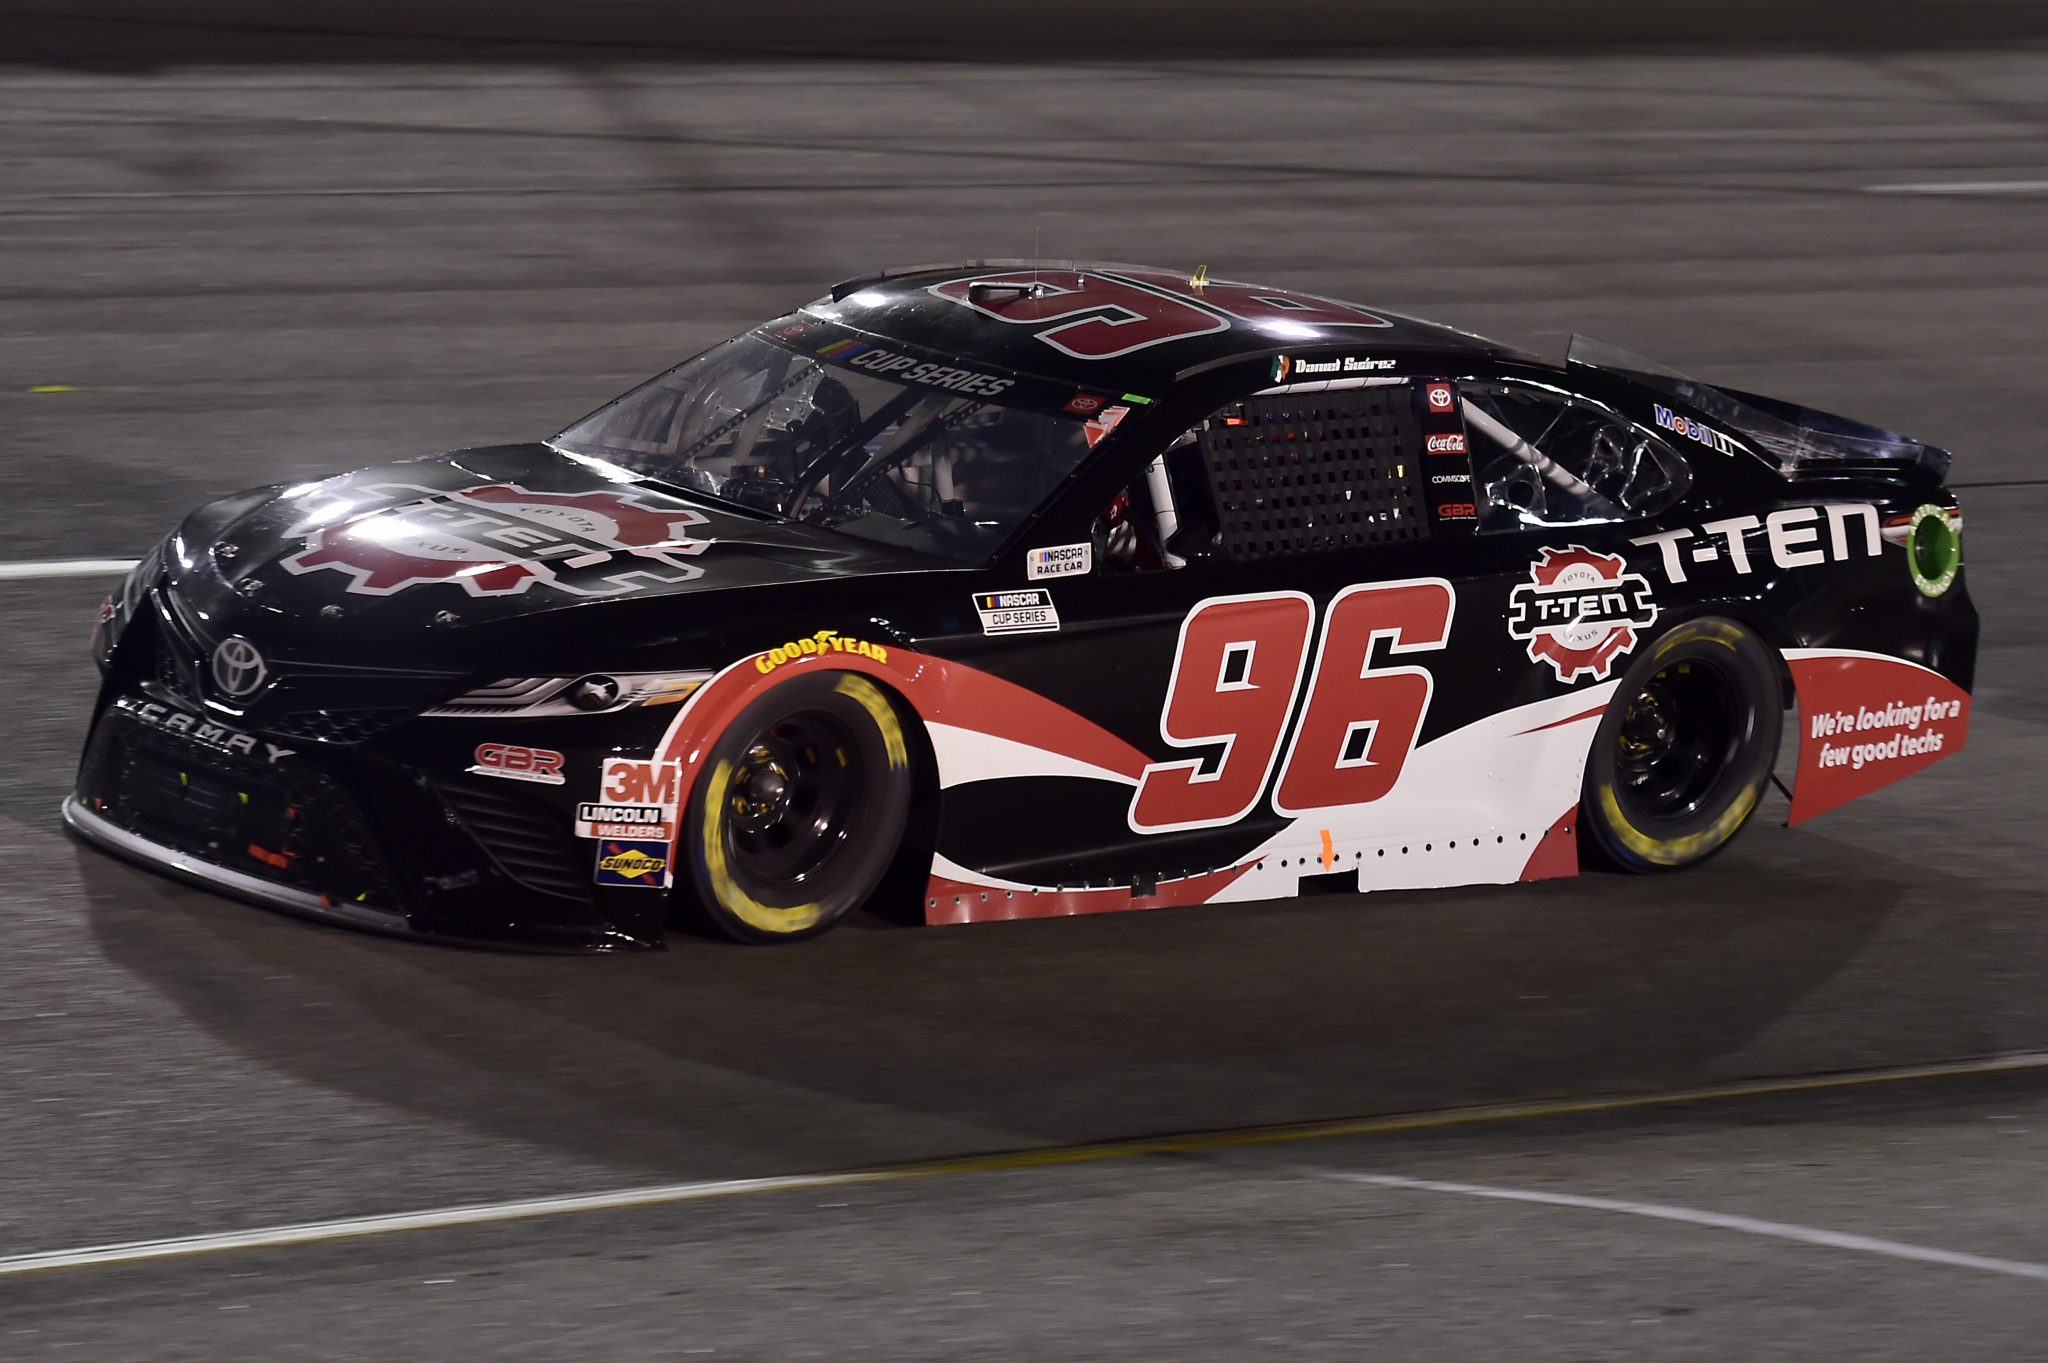 RICHMOND, VIRGINIA - SEPTEMBER 12: Daniel Suarez, driver of the #96 TOYOTA T-TEN Toyota, drives during the NASCAR Cup Series Federated Auto Parts 400 at Richmond Raceway on September 12, 2020 in Richmond, Virginia. (Photo by Jared C. Tilton/Getty Images) | Getty Images